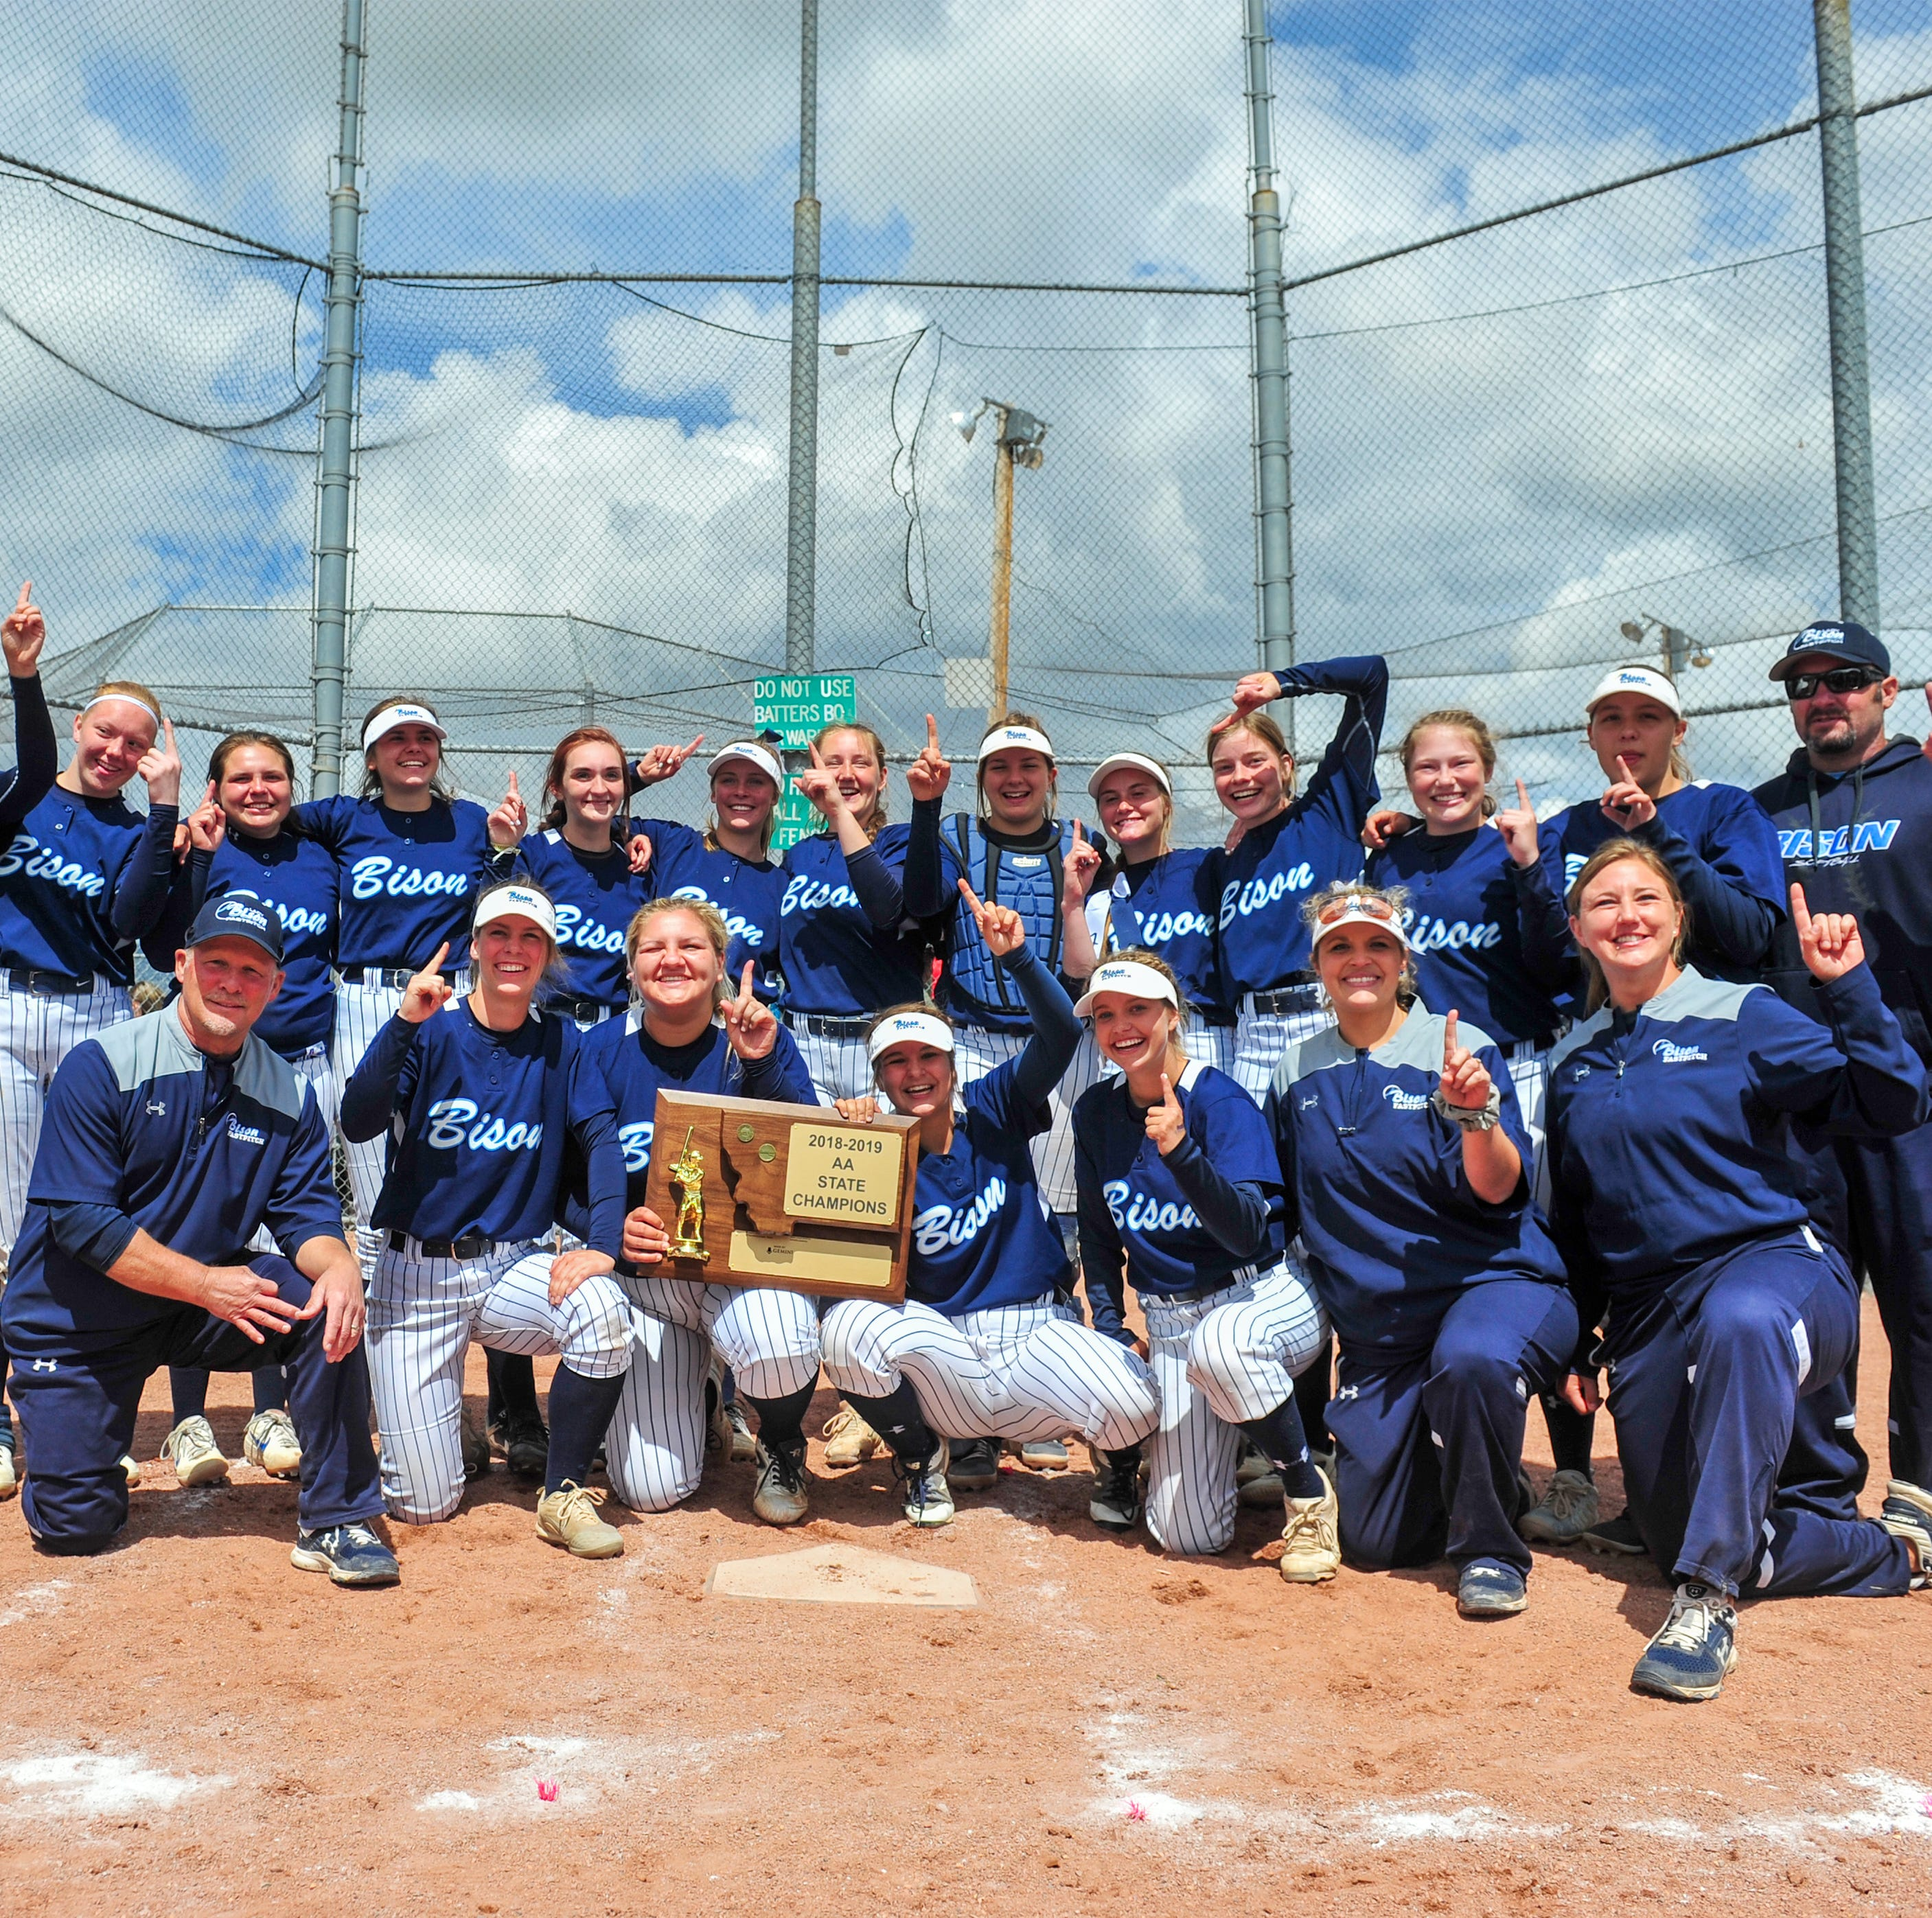 UPDATE: Bison softball team repeats as Class AA champs